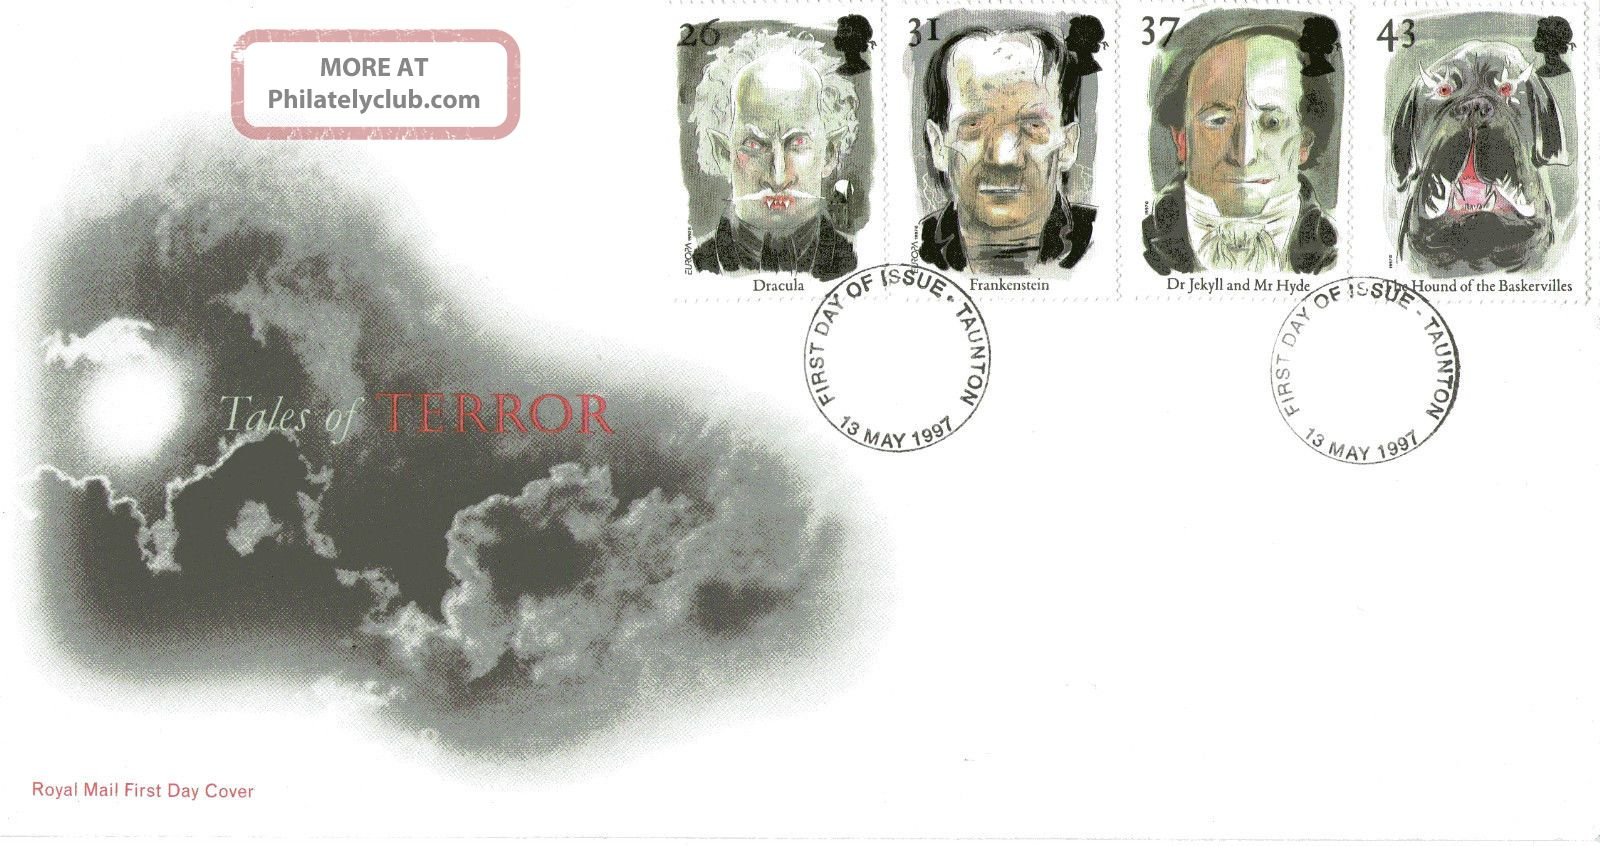 13 May 1997 Tales Of Terror Royal Mail First Day Cover Taunton Fdi Topical Stamps photo